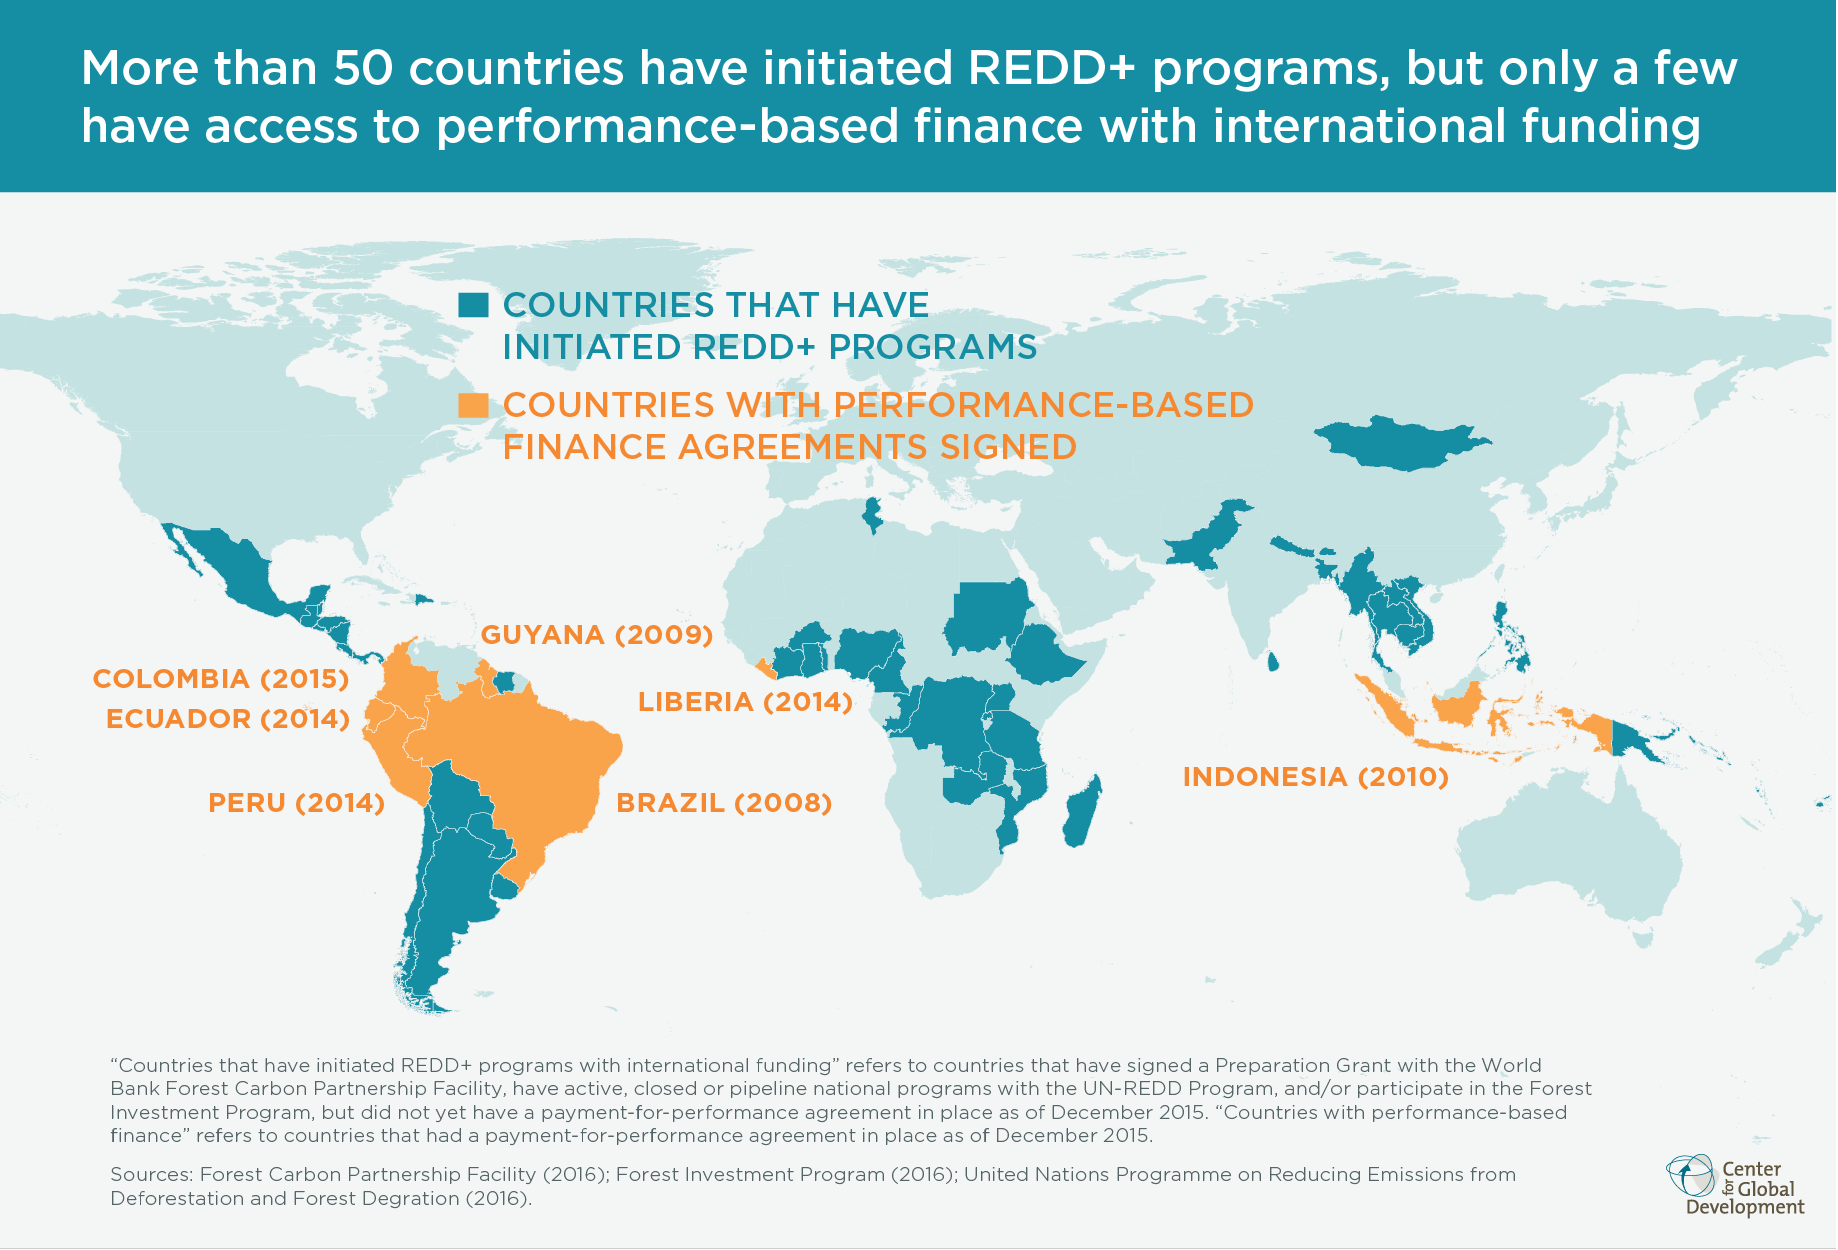 Infographic: Map of countries with Redd+ agreements